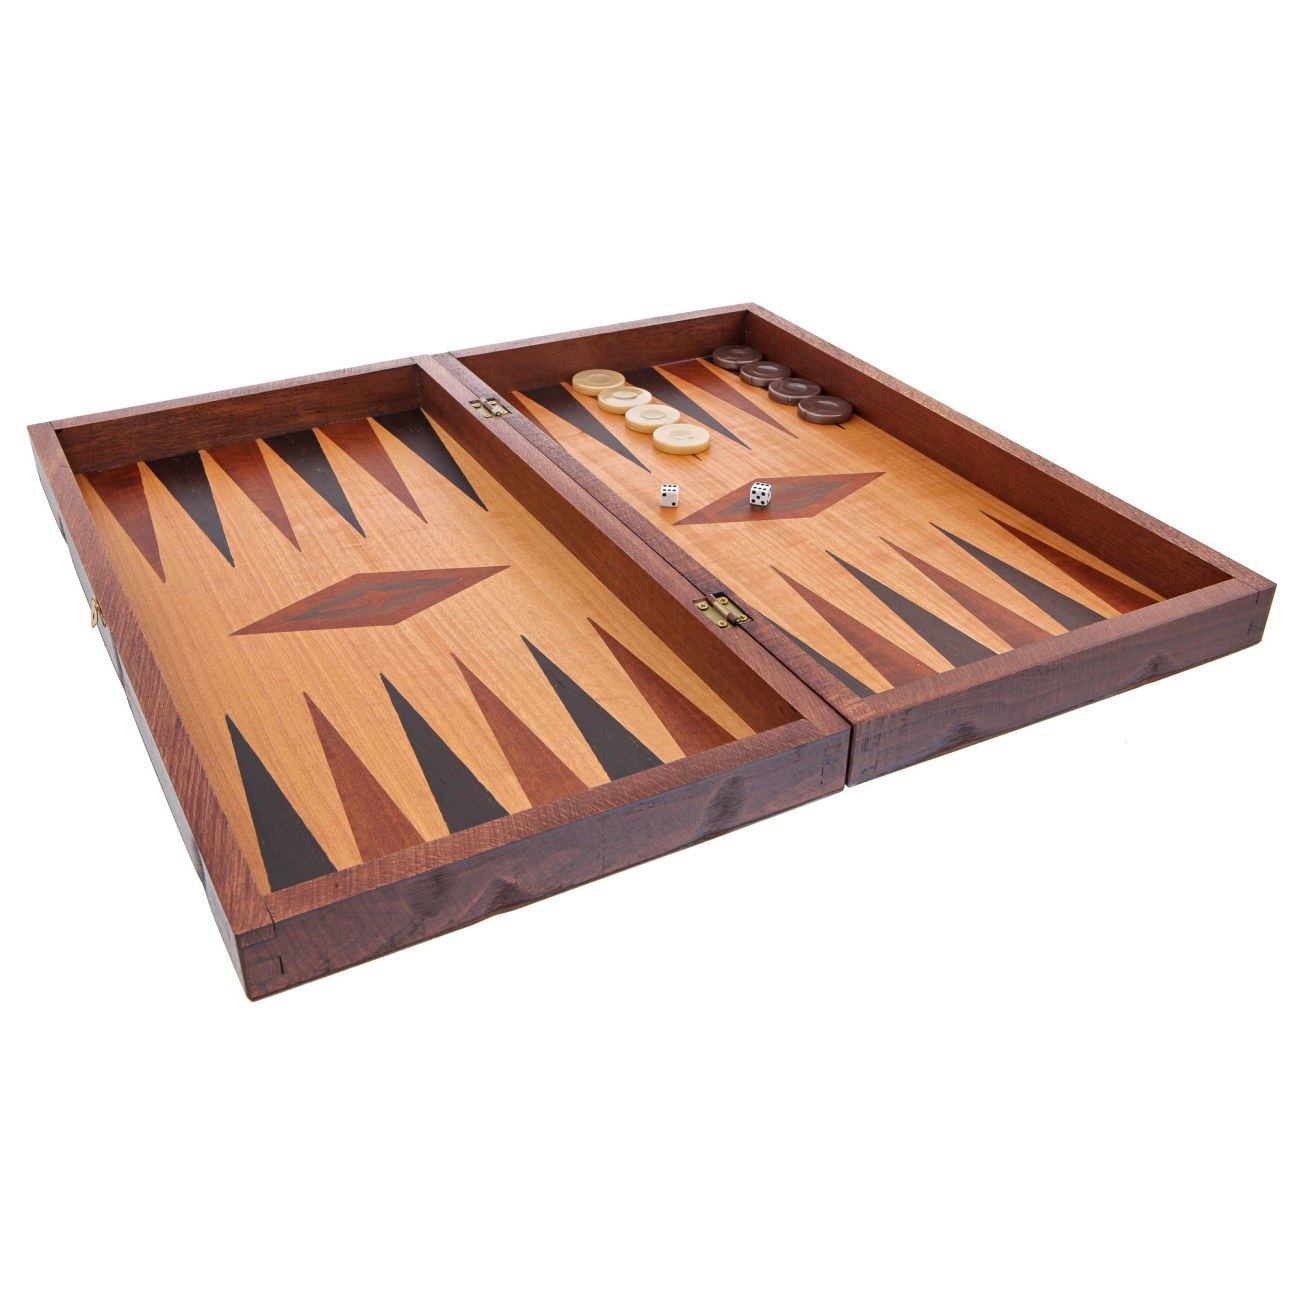 Backgammon Game Set Wooden Handmade Quot The Players